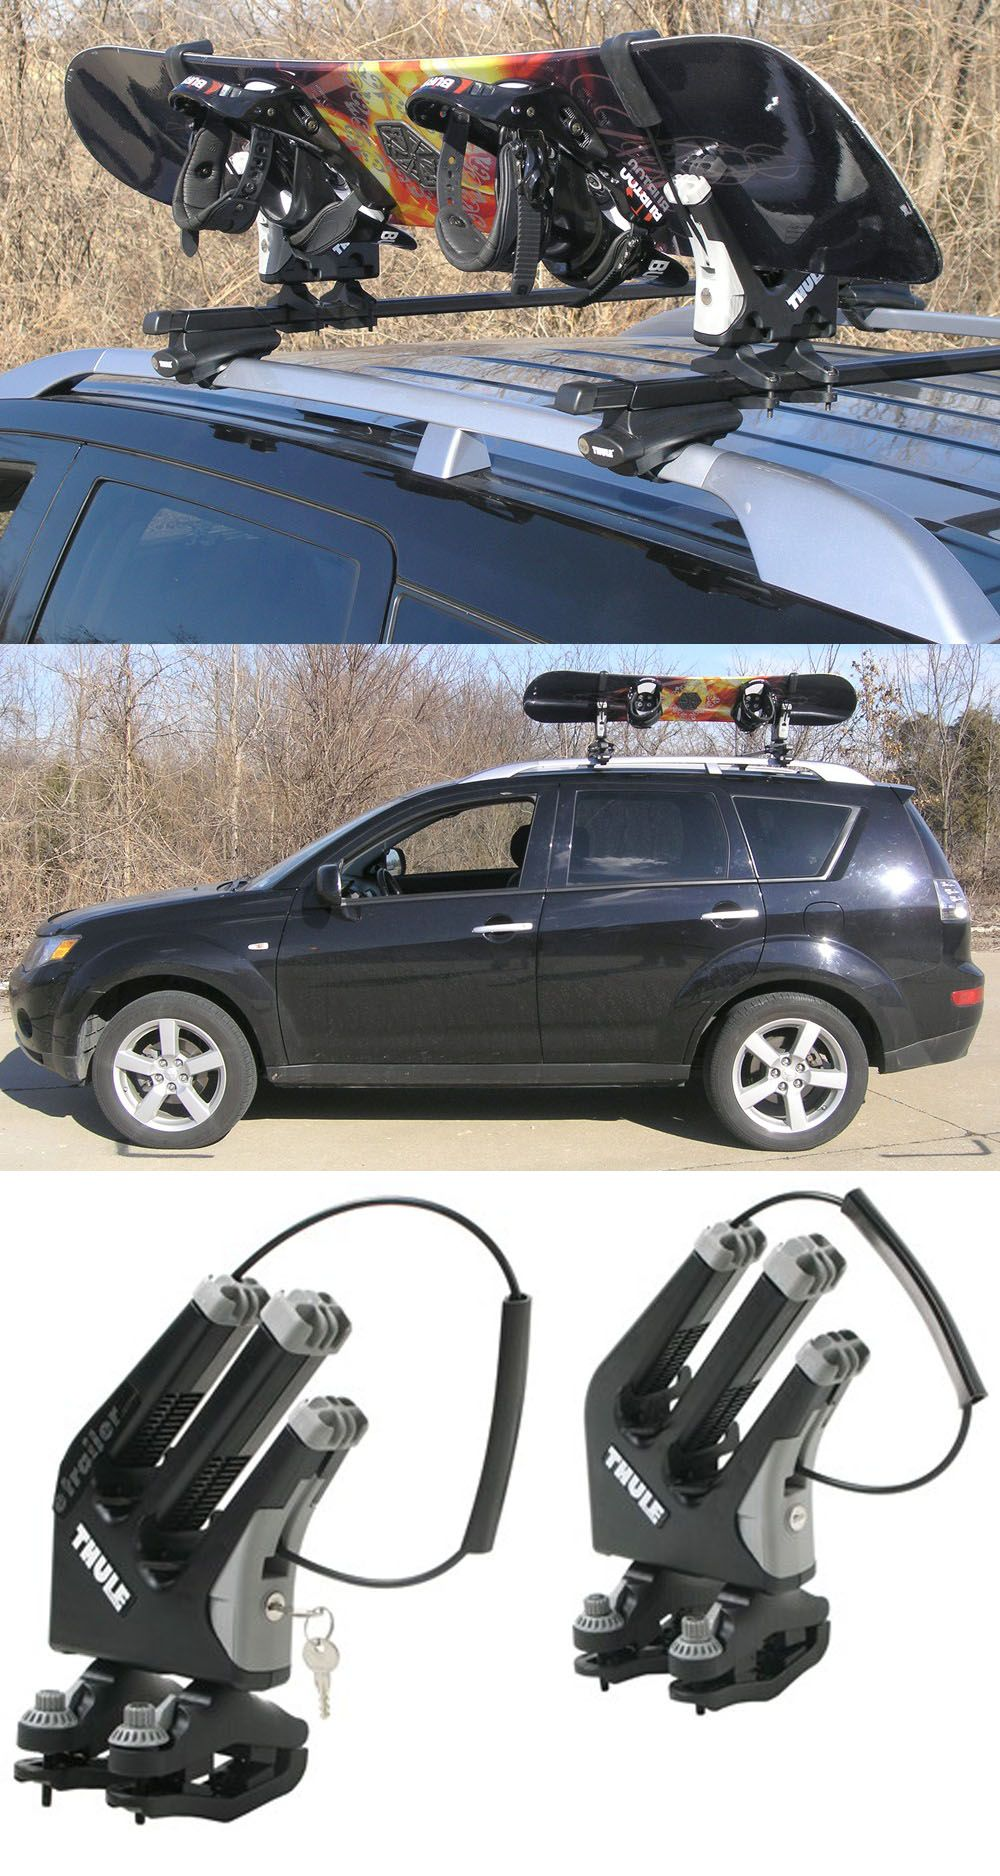 Thule Snowboard Rack With Locks Free Up Some More Space On The Roof For Skis Or A Cargo Box With This Rack Snowboard Racks Snowboard Roof Rack Ski Rack Car